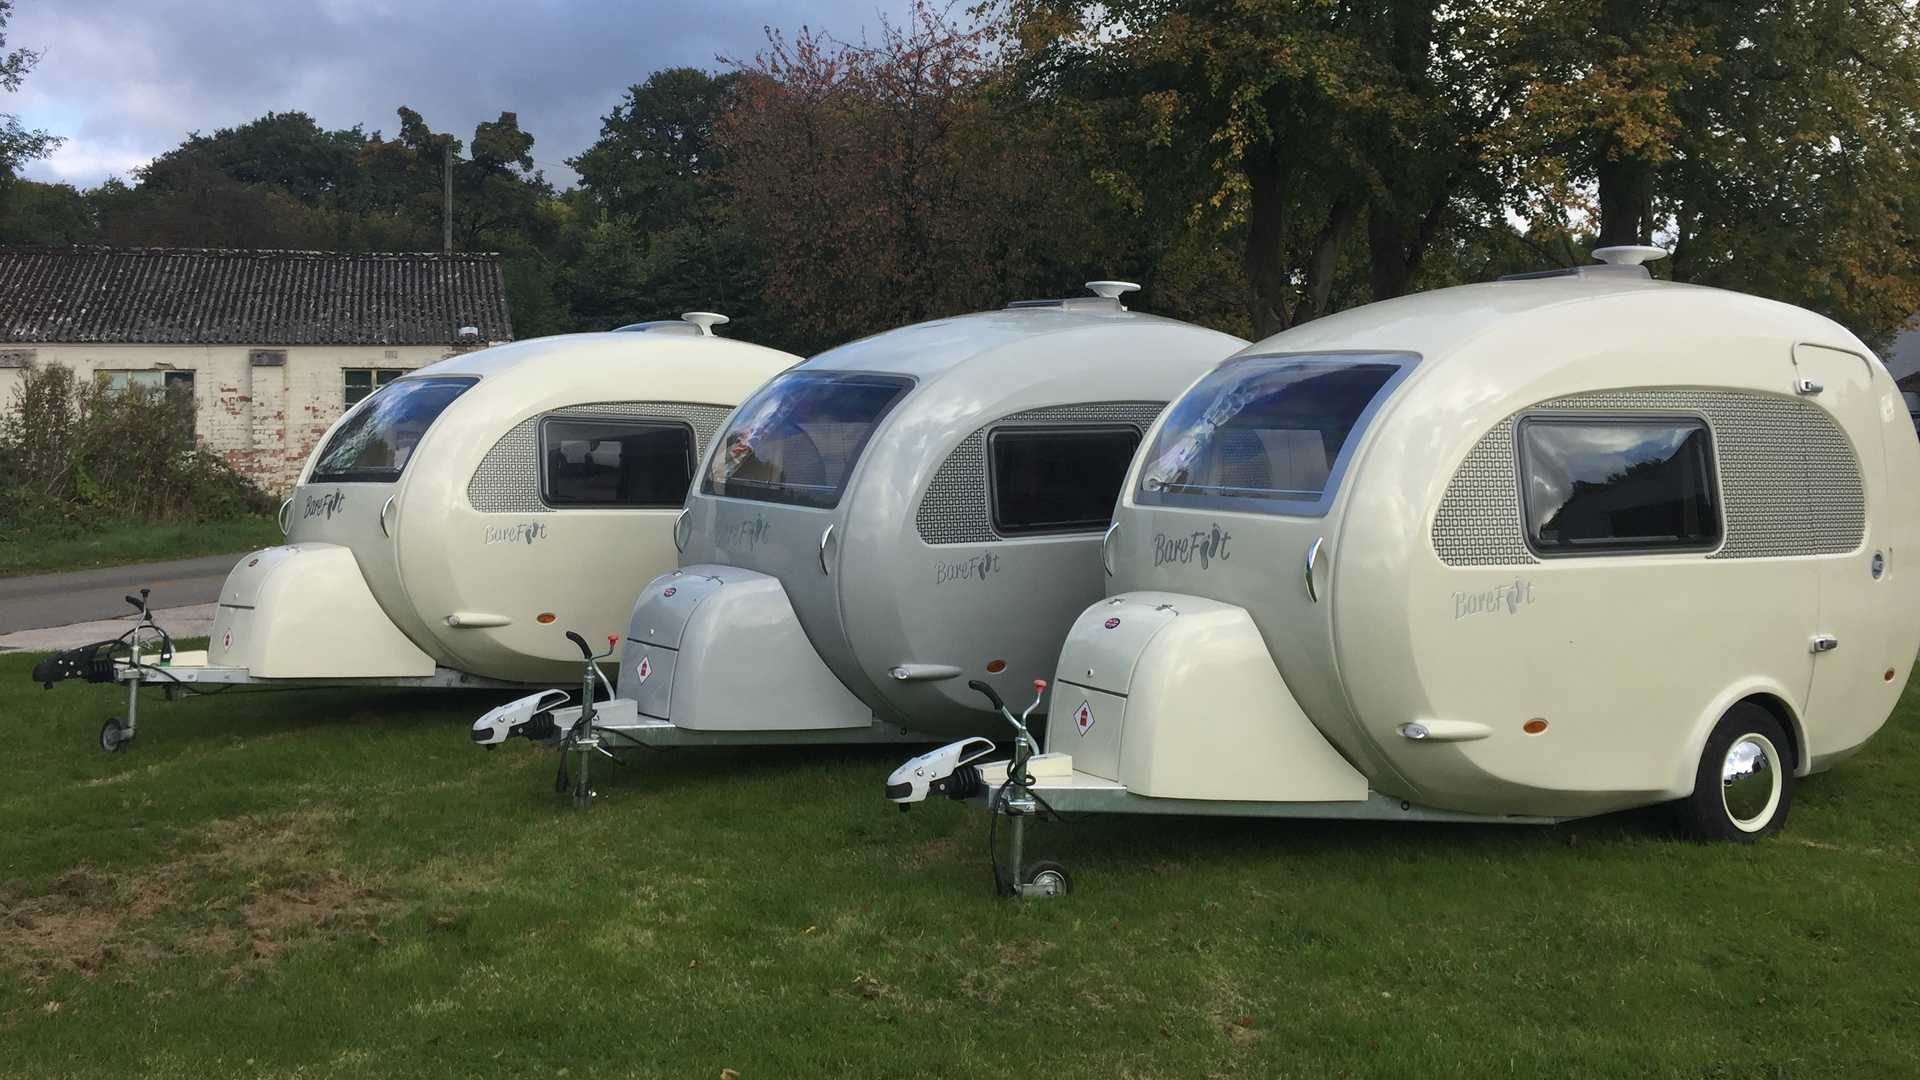 The Egg Shaped Barefoot Caravans Trailer From The Uk Which Starts Production For North America Next Year Travel Trailer Small Travel Trailers Travel Camper